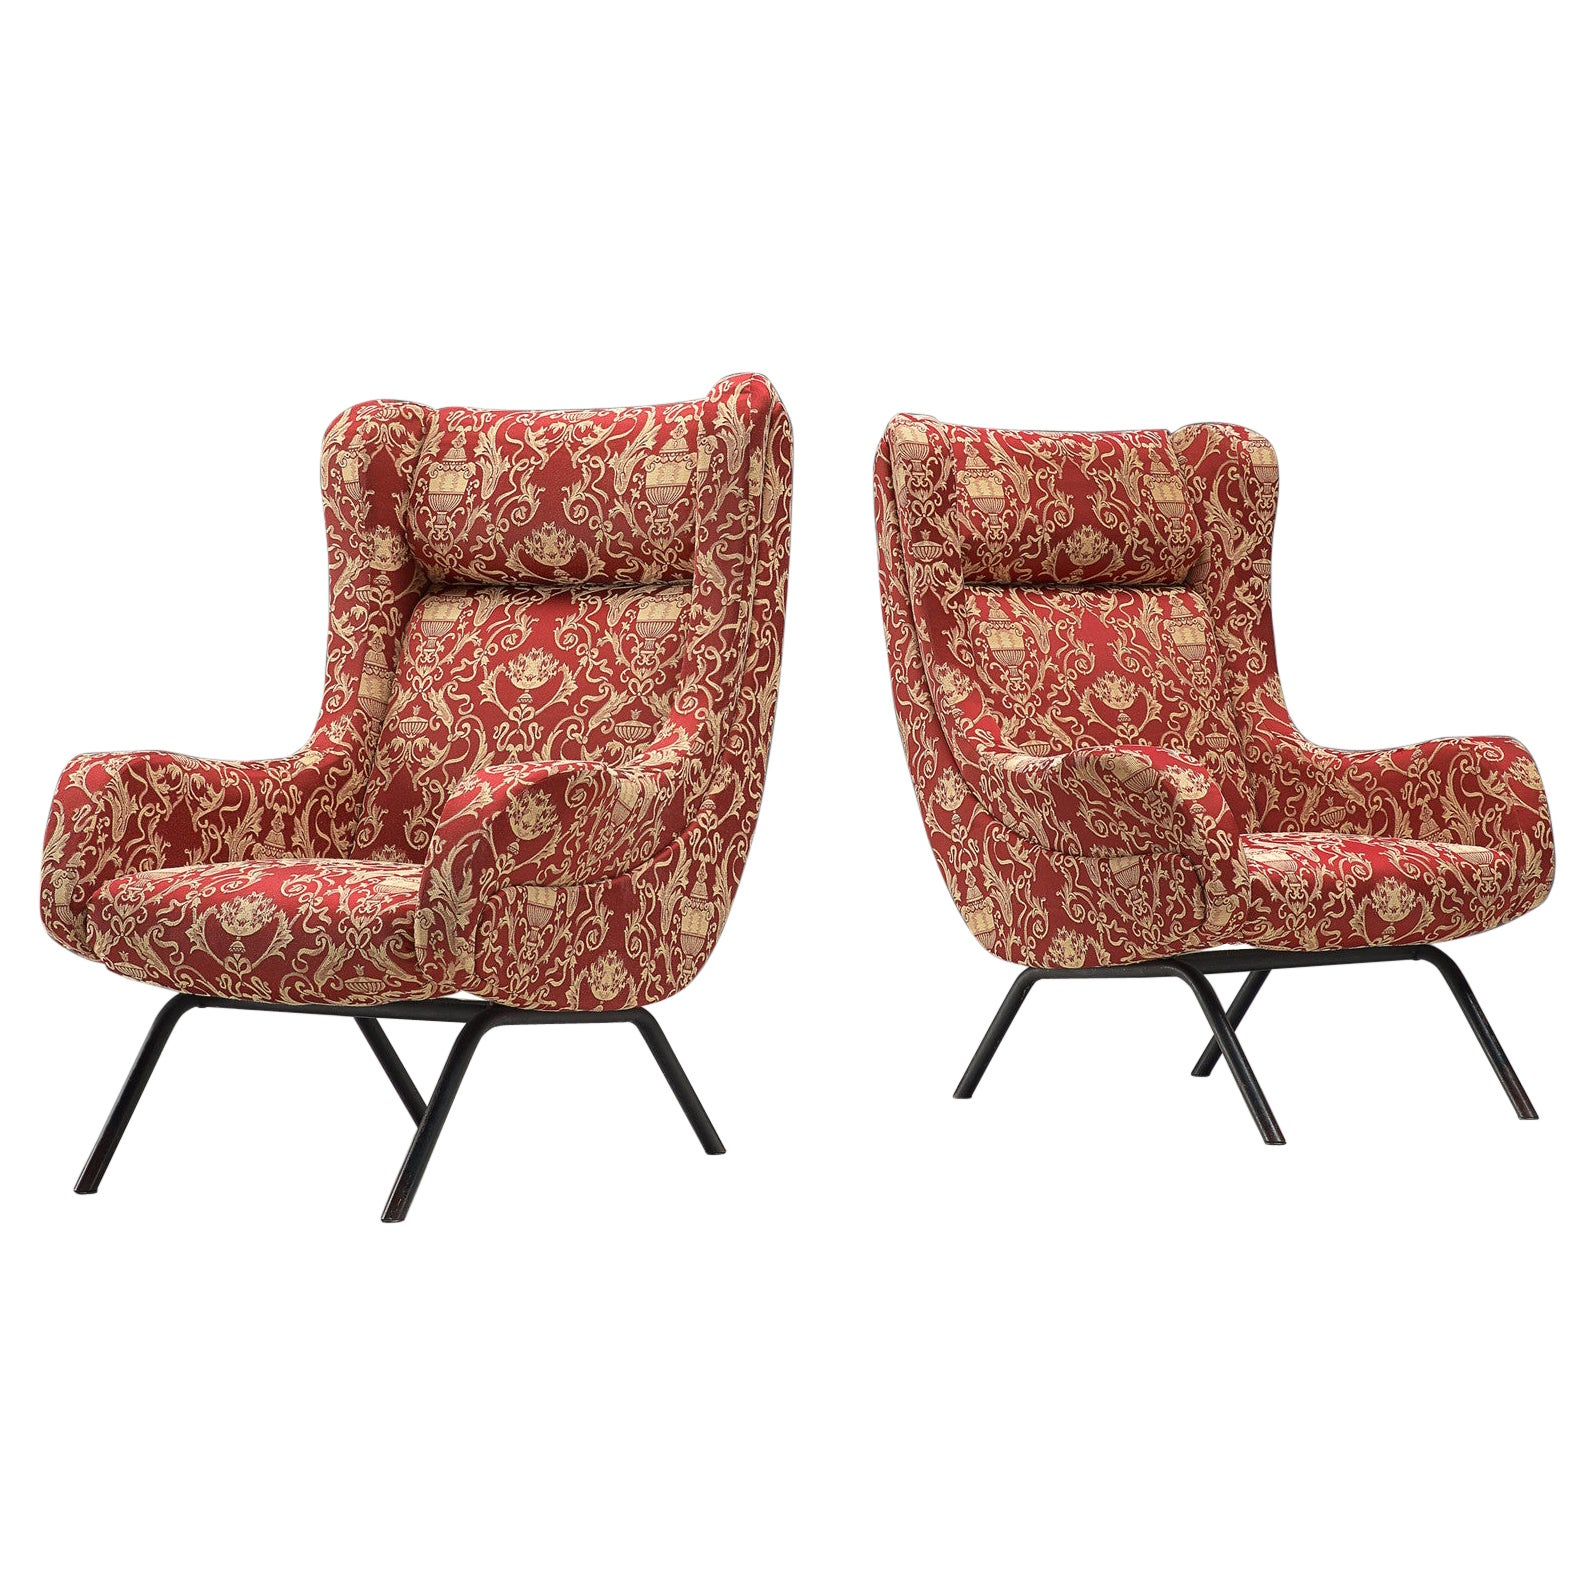 Pair of Italian Armchairs in Metal and Patterned Upholstery